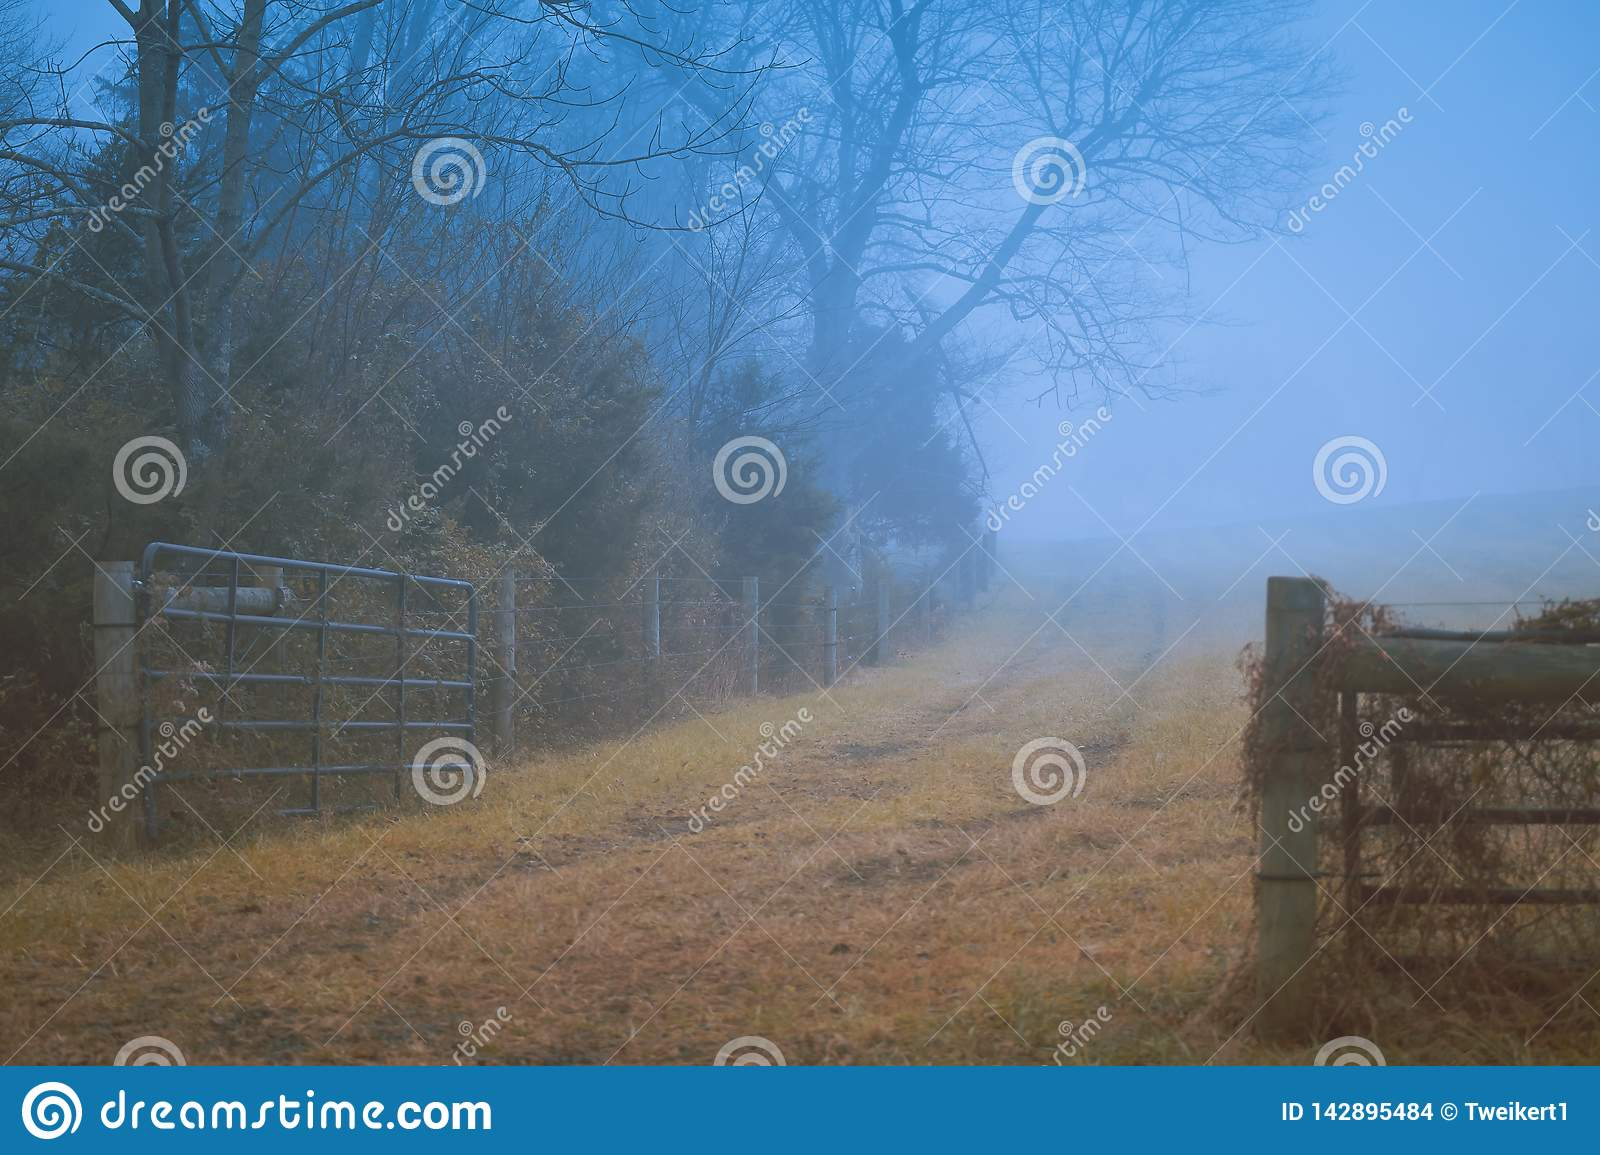 Gettysburg, PA / USA - December, 2018: An old wooden fence along the mystical dirt road in the fog. Autumn concept